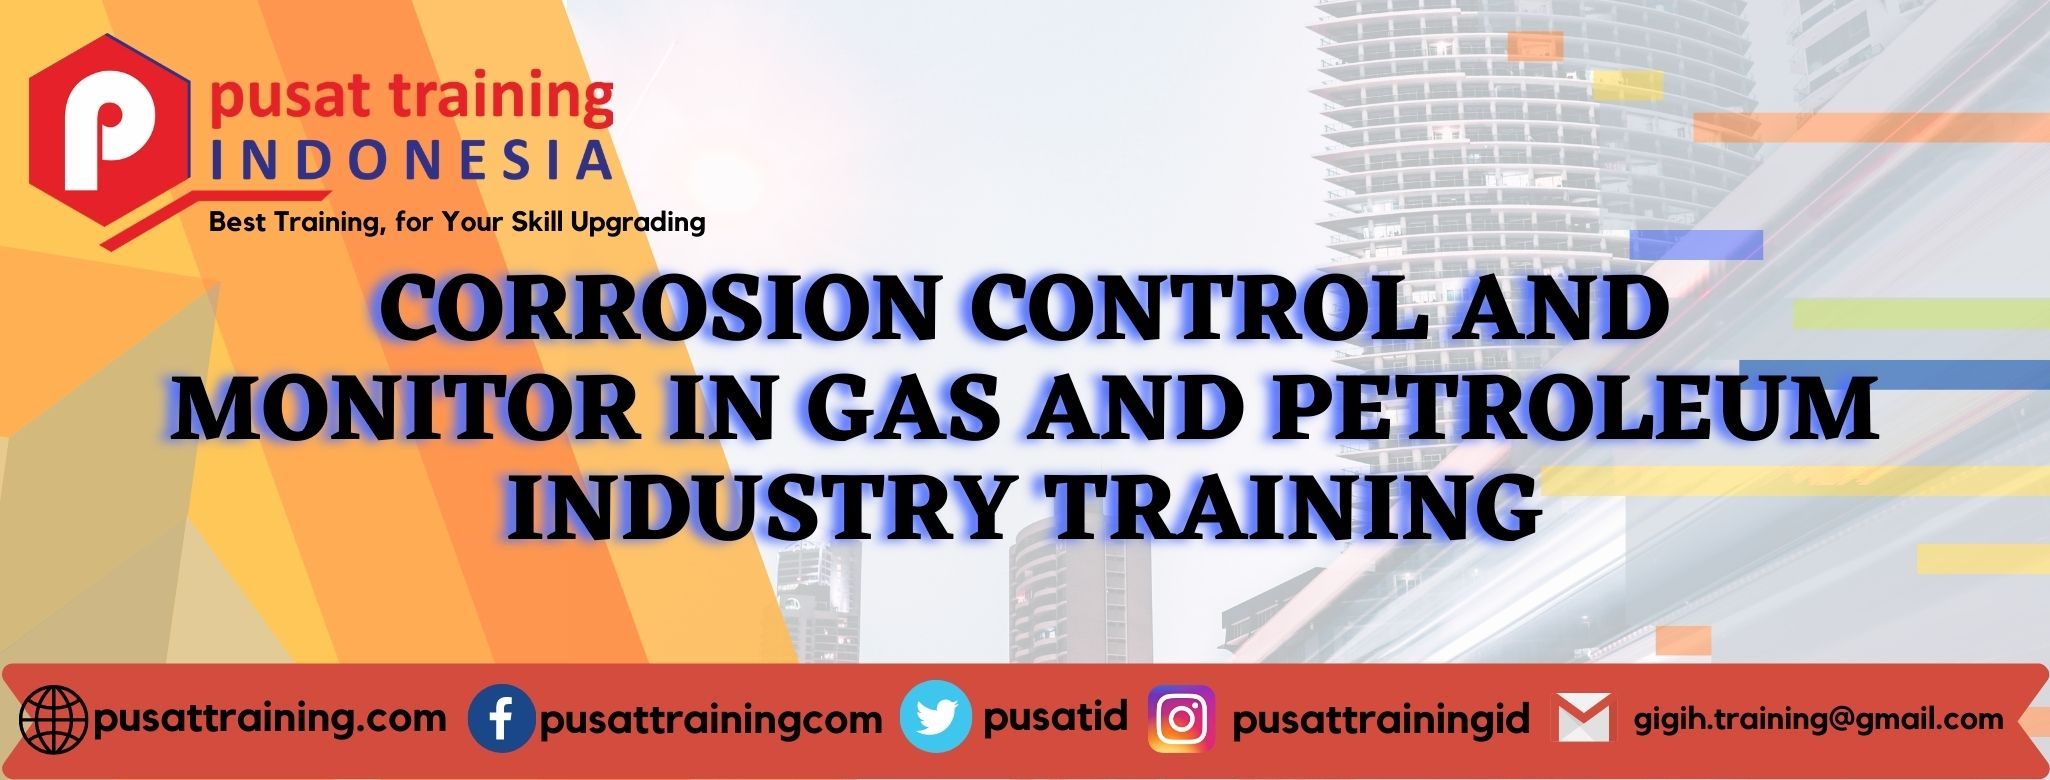 CORROSION CONTROL AND MONITOR IN GAS AND PETROLEUM INDUSTRY TRAINING